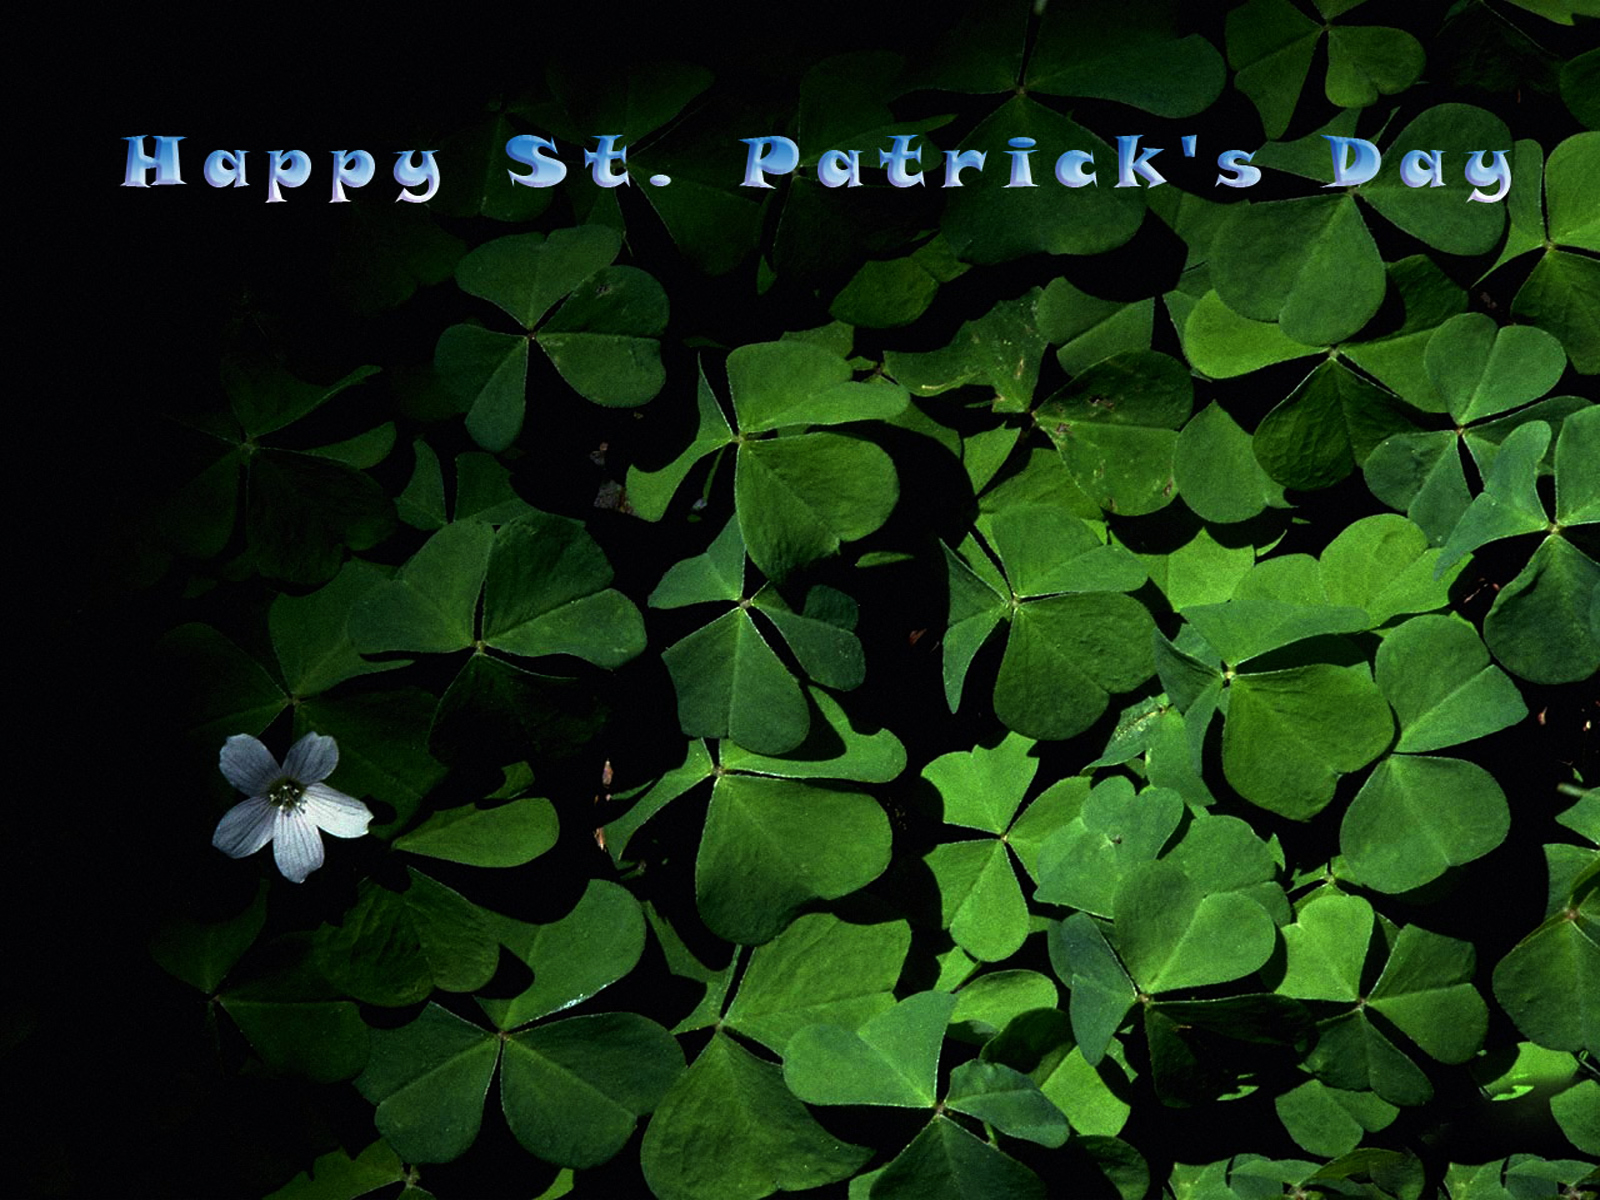 St patrick 39 s day wallpaper backgrounds wallpapersafari - Desktop wallpaper 1600x1200 ...